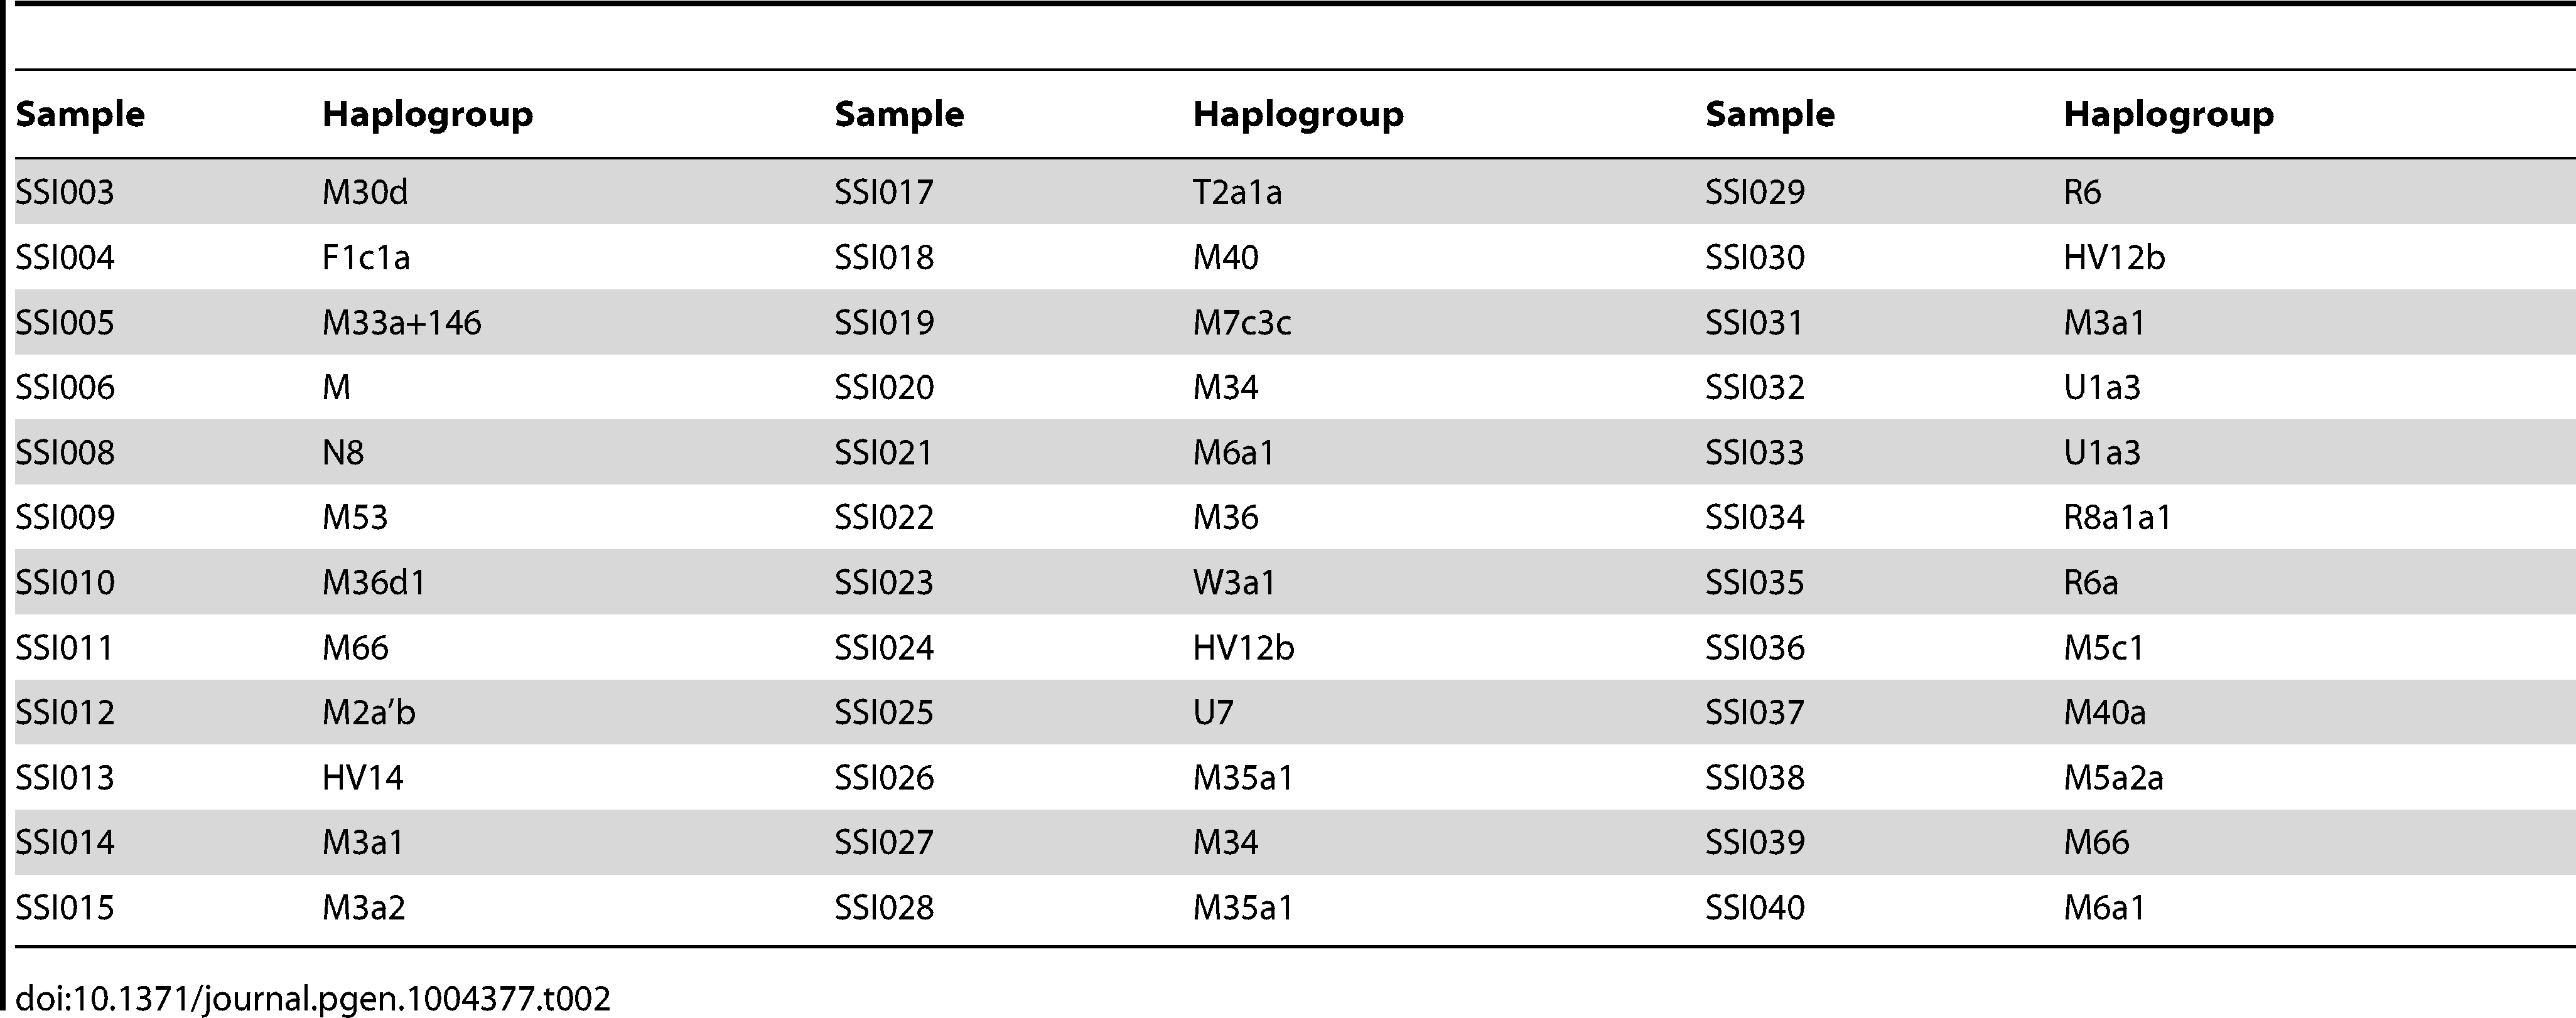 Mitochondria haplogroup assignment for the 36 SSIP samples.